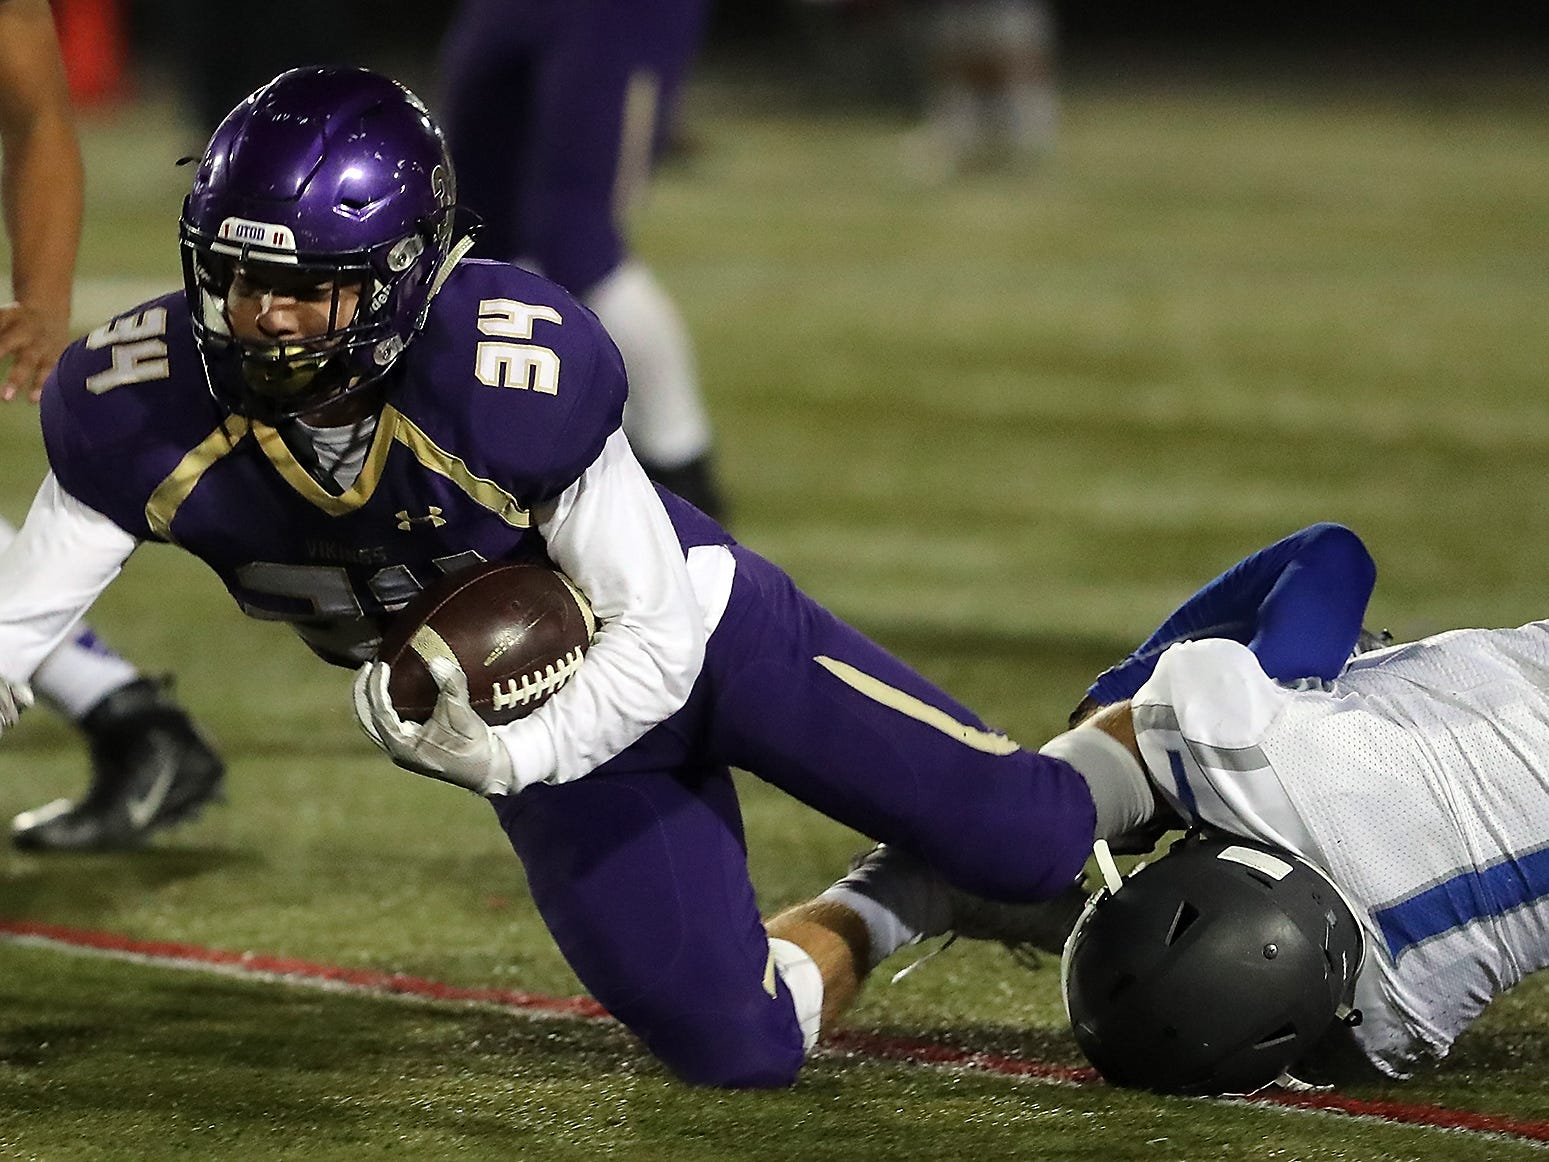 North Kitsap's Clayton Willilams (34) is brought down by Olympic's Malcolm Dewalt (1) during the first half of their game in Poulsbo on Friday, October 26, 2018.